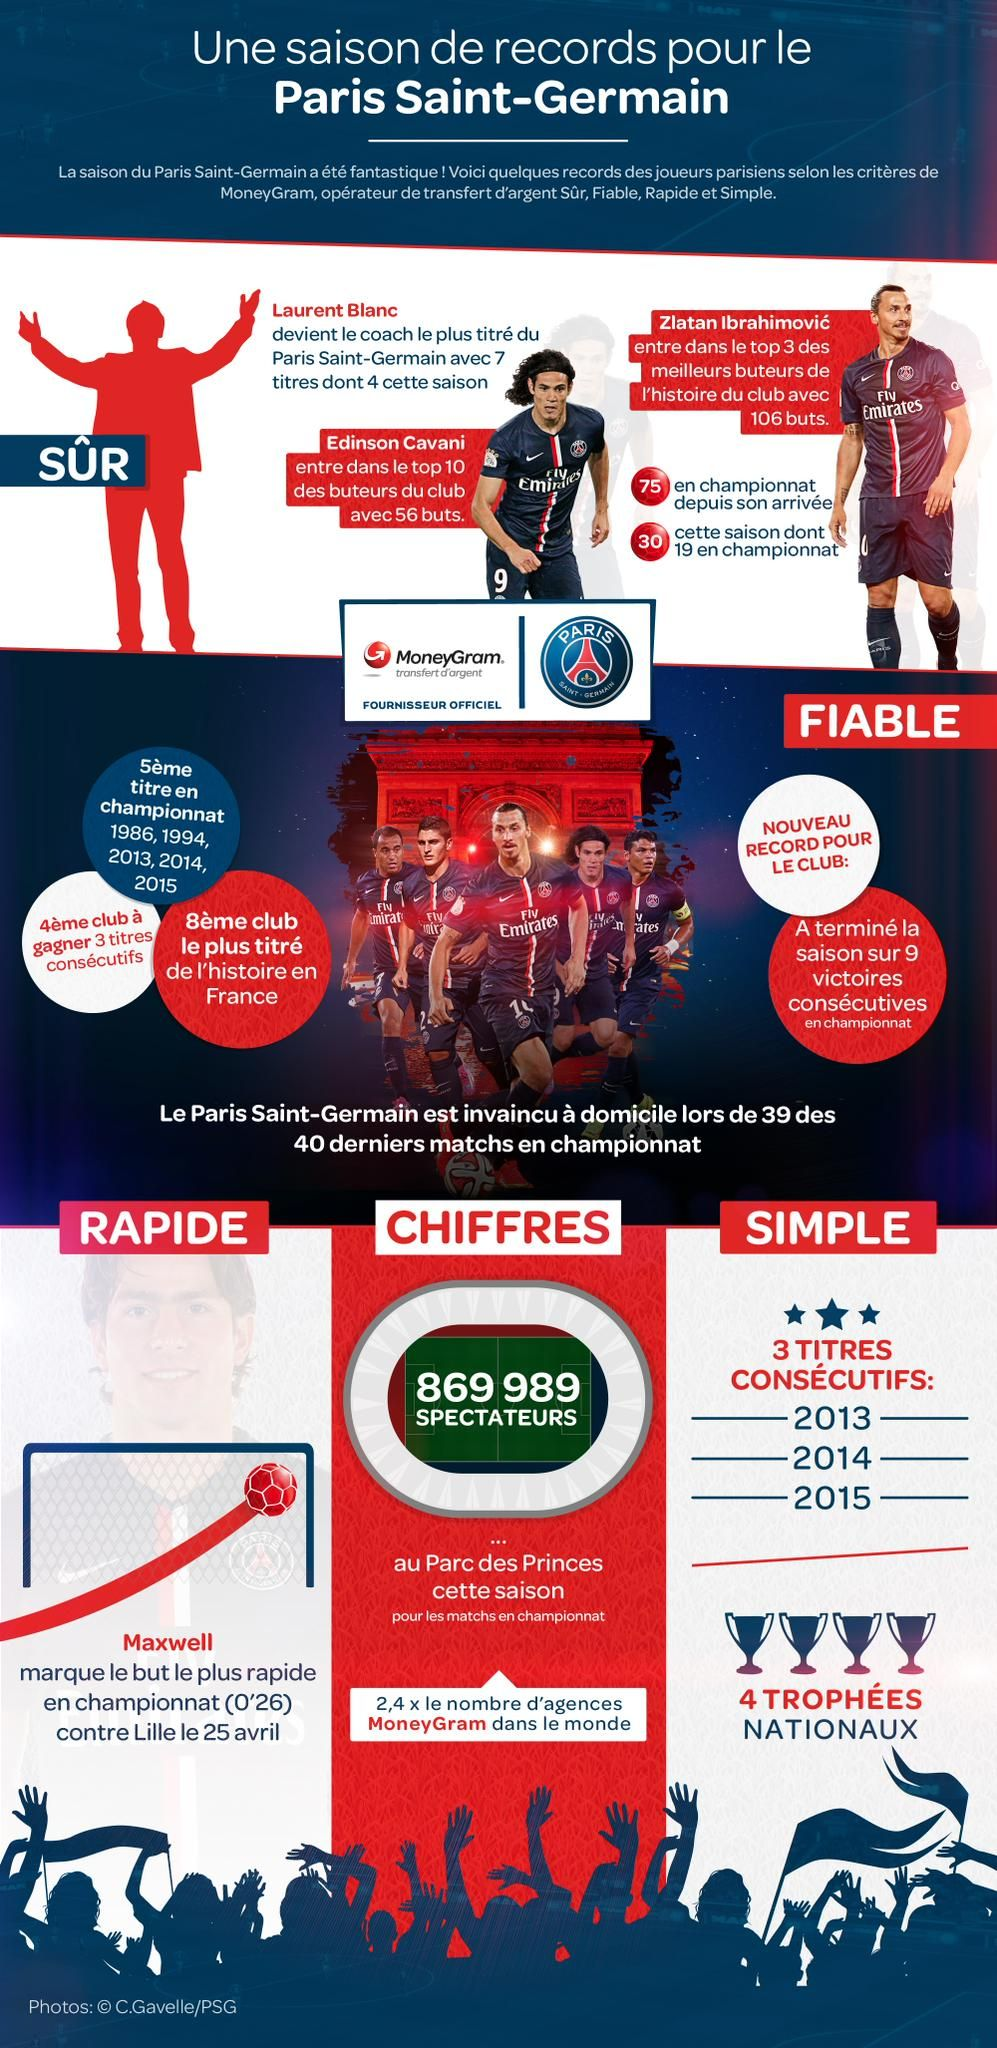 Relating MoneyGram's services to Paris Saint-Germain (4 trophies won this season): Fast, safe and reliable